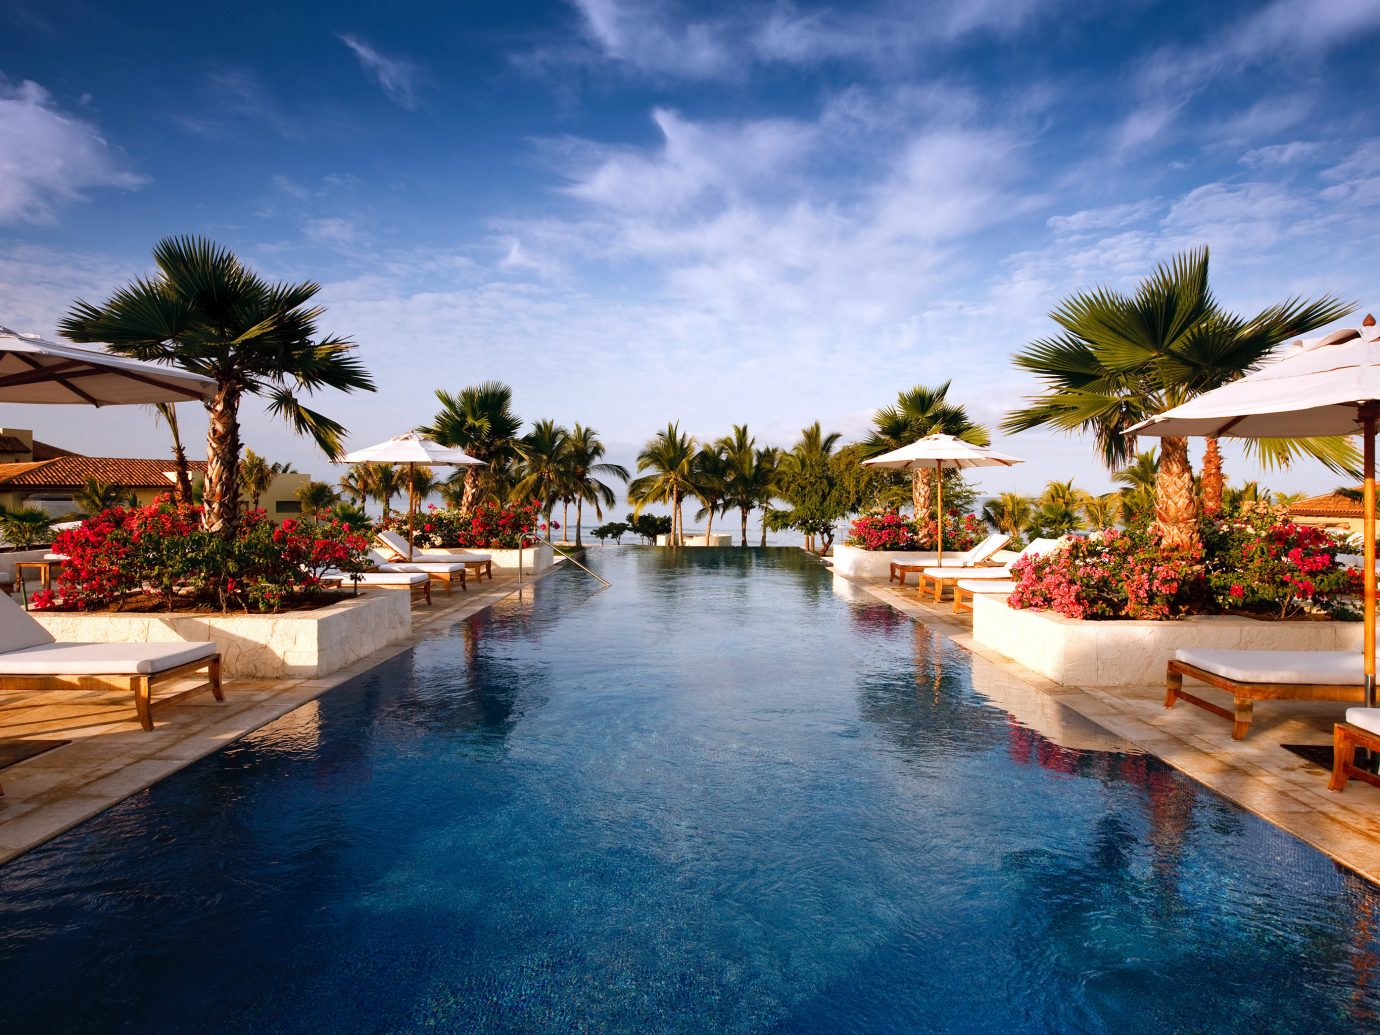 Pool at St. Regis Punta Mita